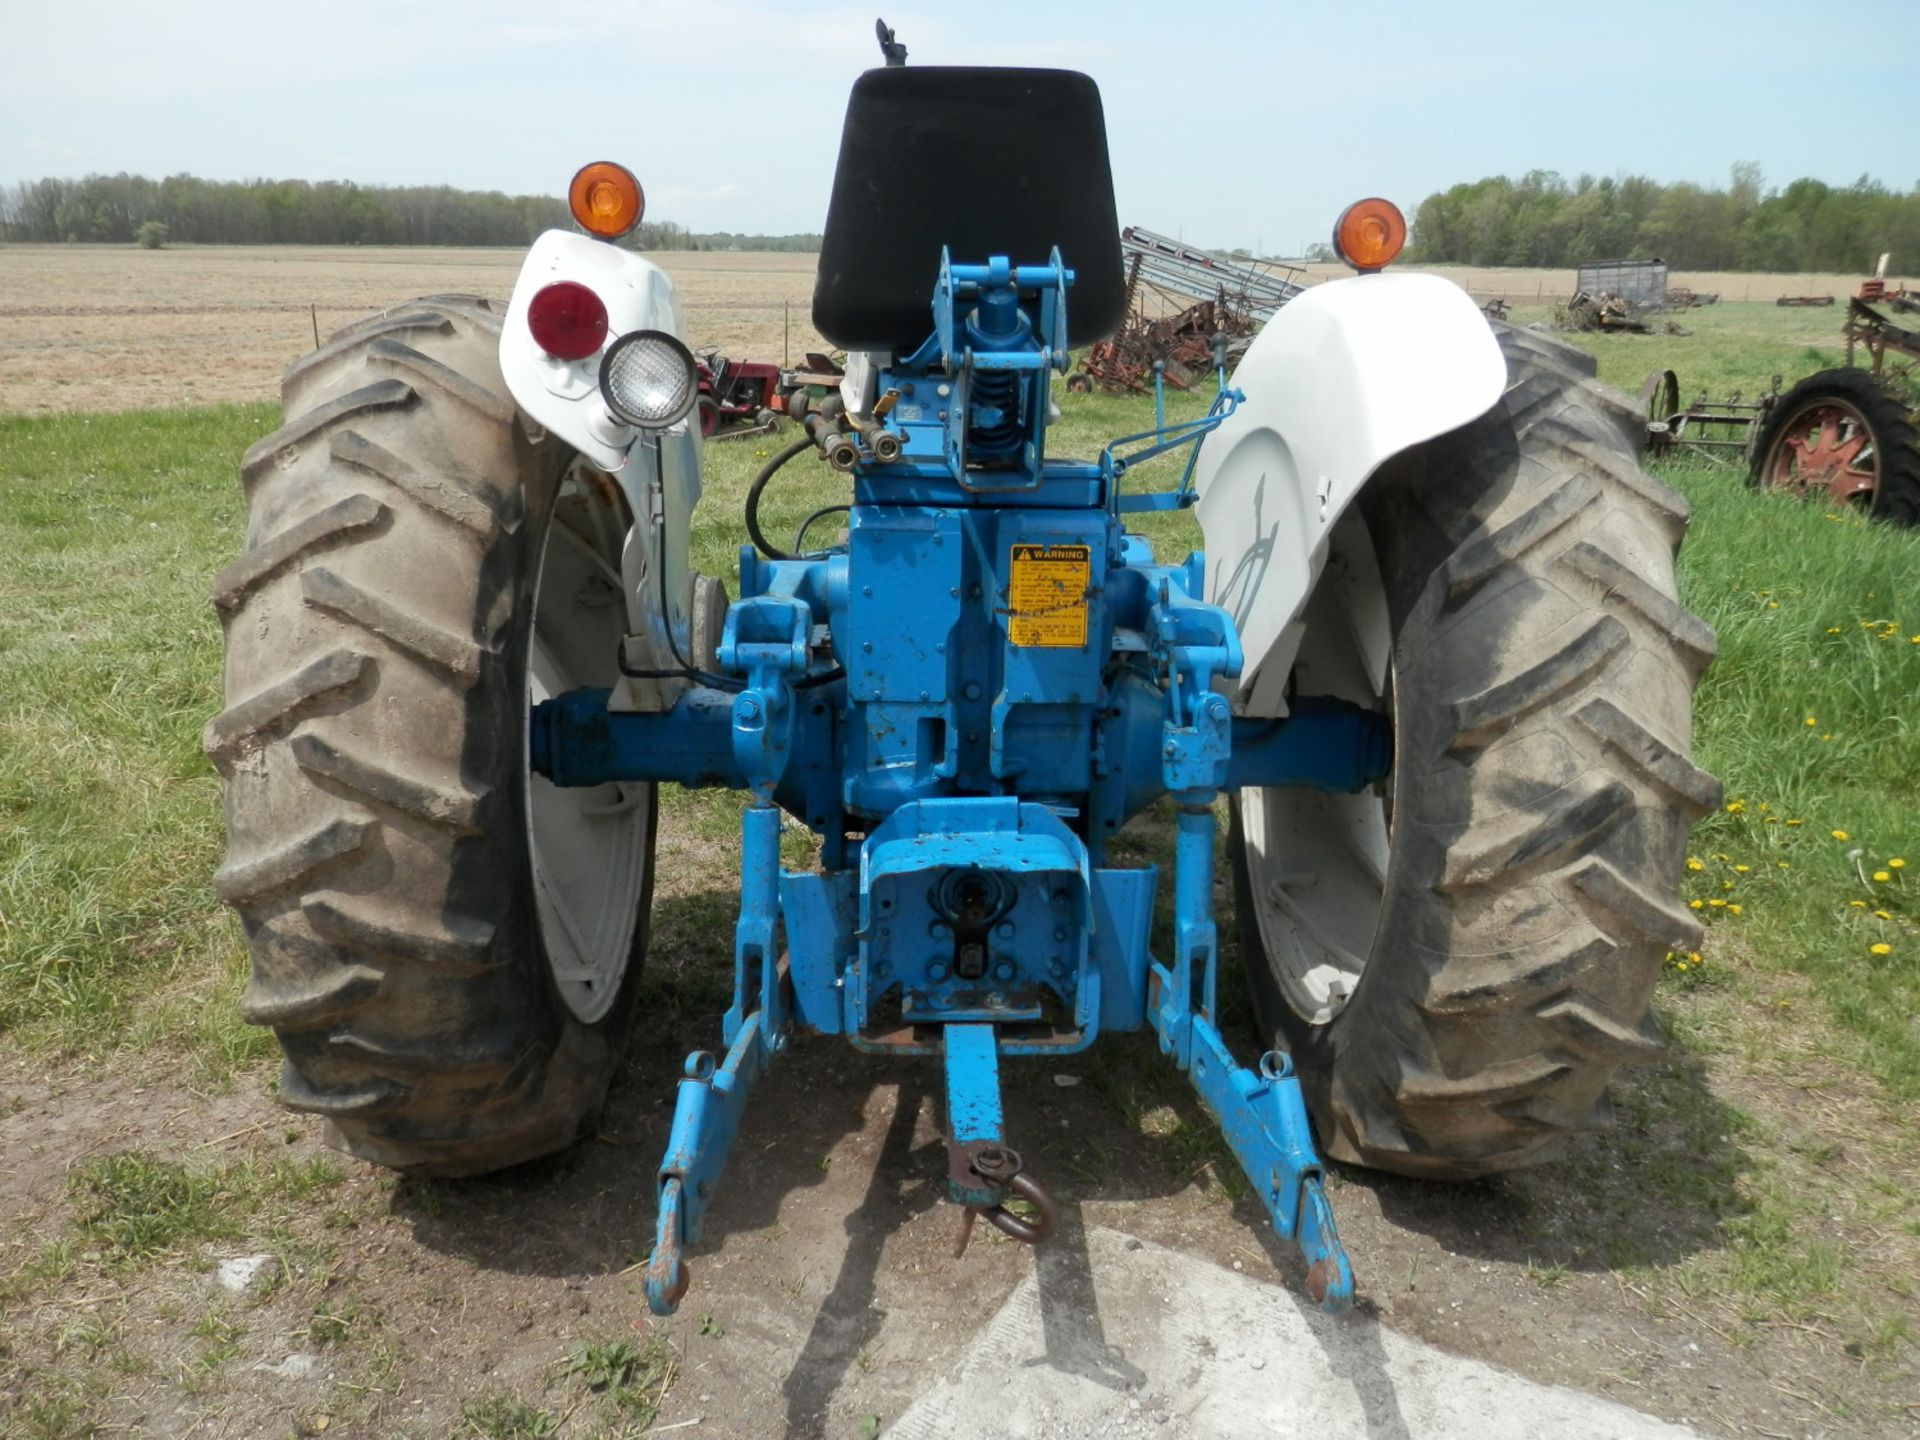 FORD 6000 COMMANDER DIESEL TRACTOR - Image 5 of 8